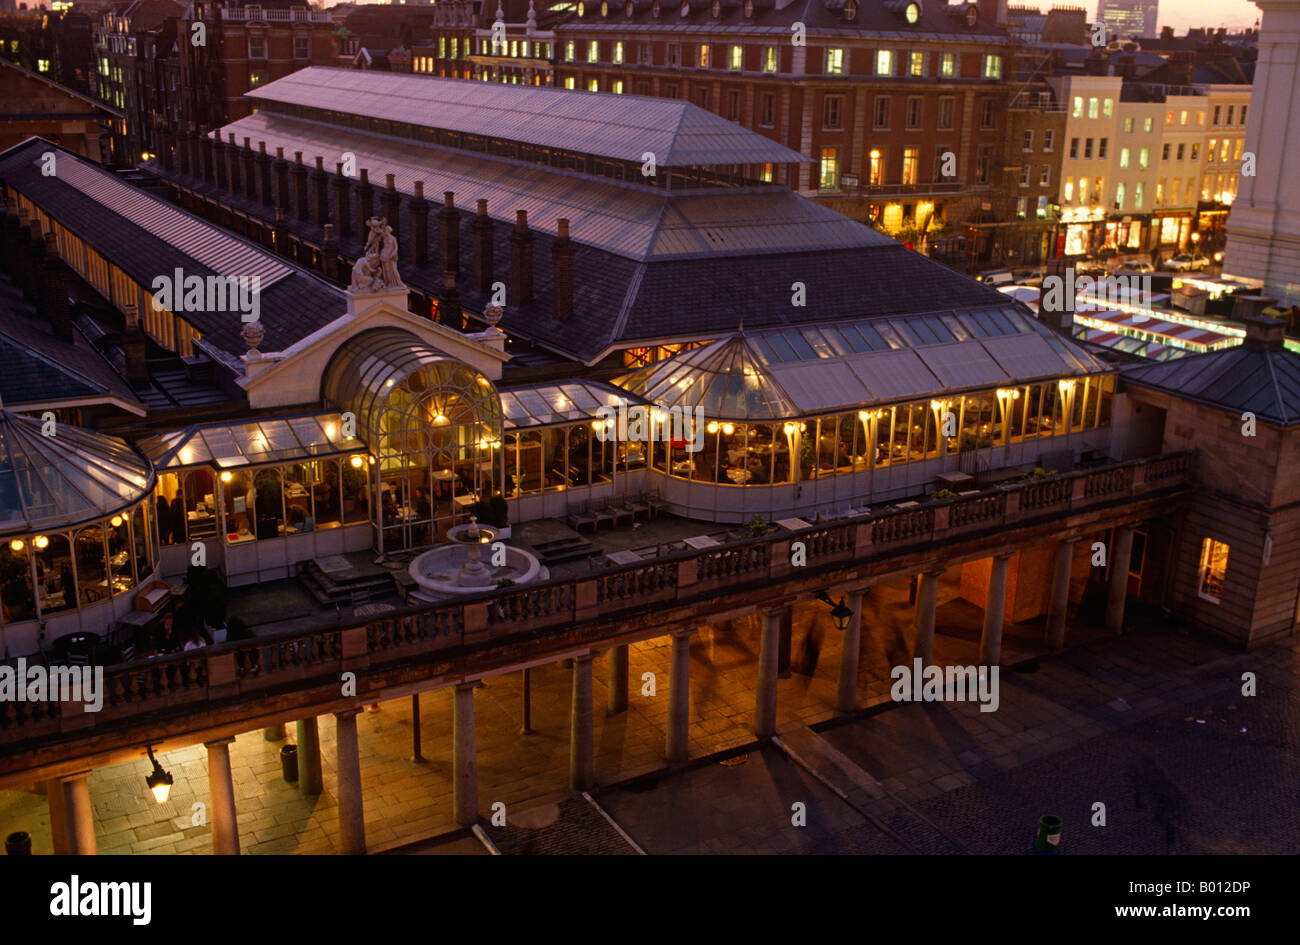 England, London. Covent Garden - this name was given, during the ...